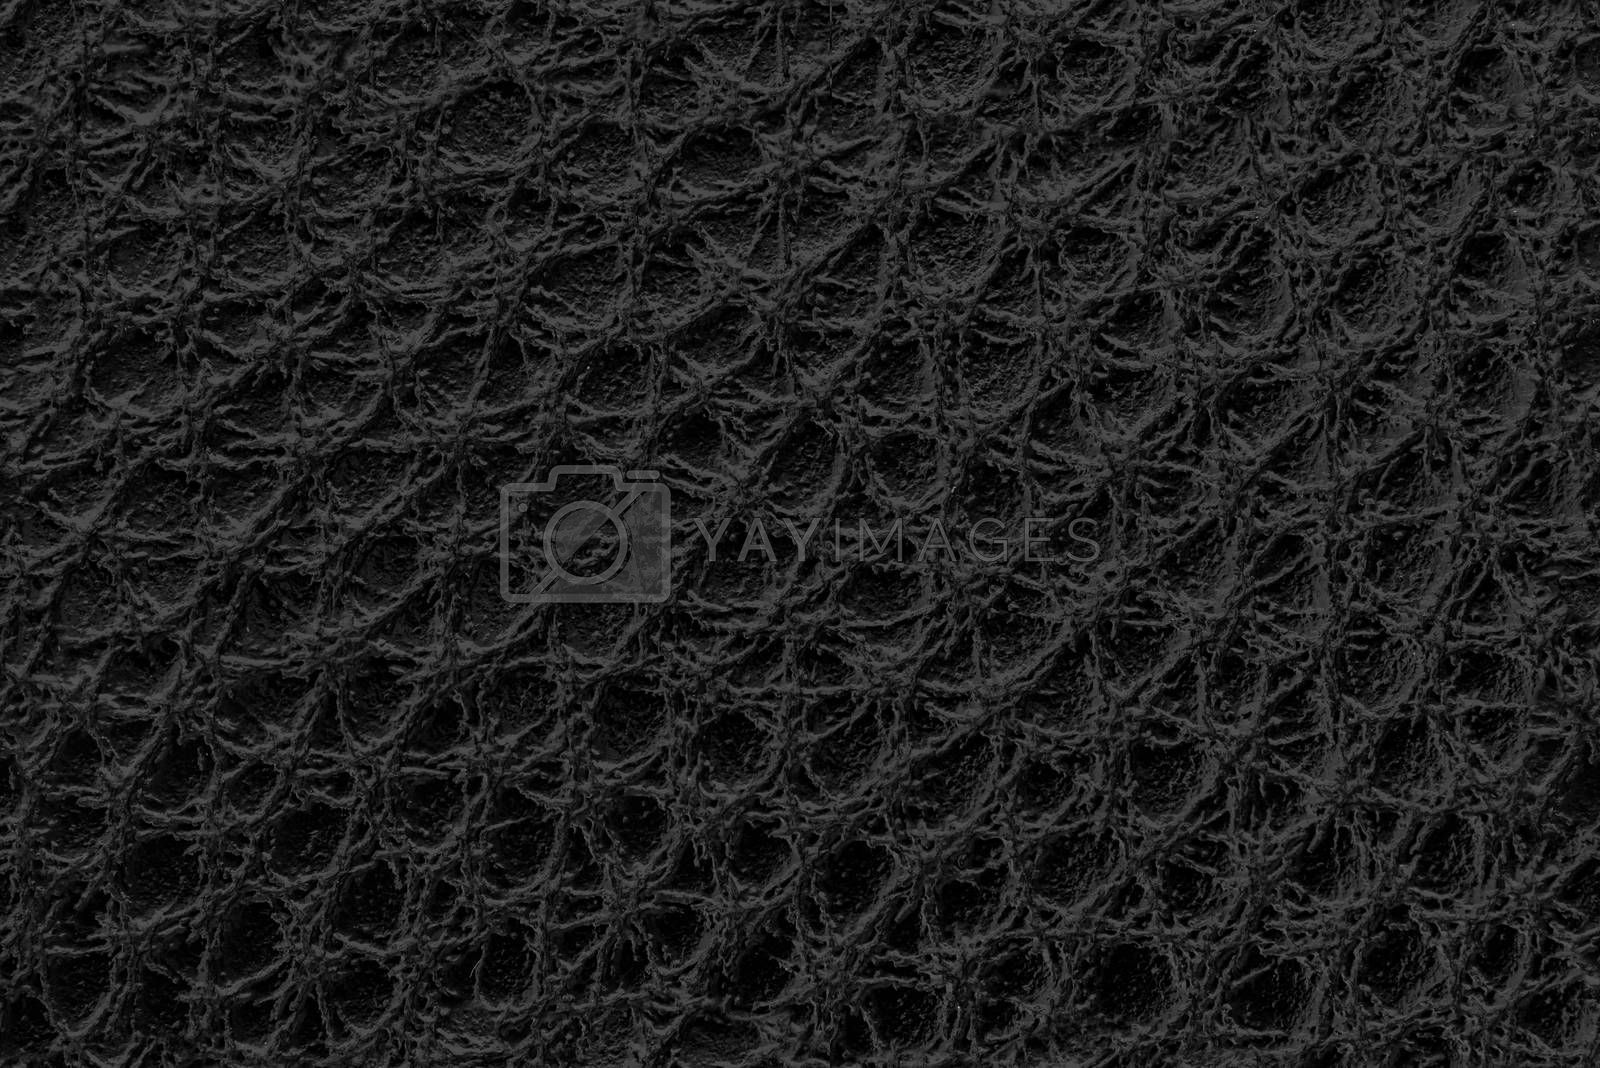 Close up of black leather as seamless texture or background